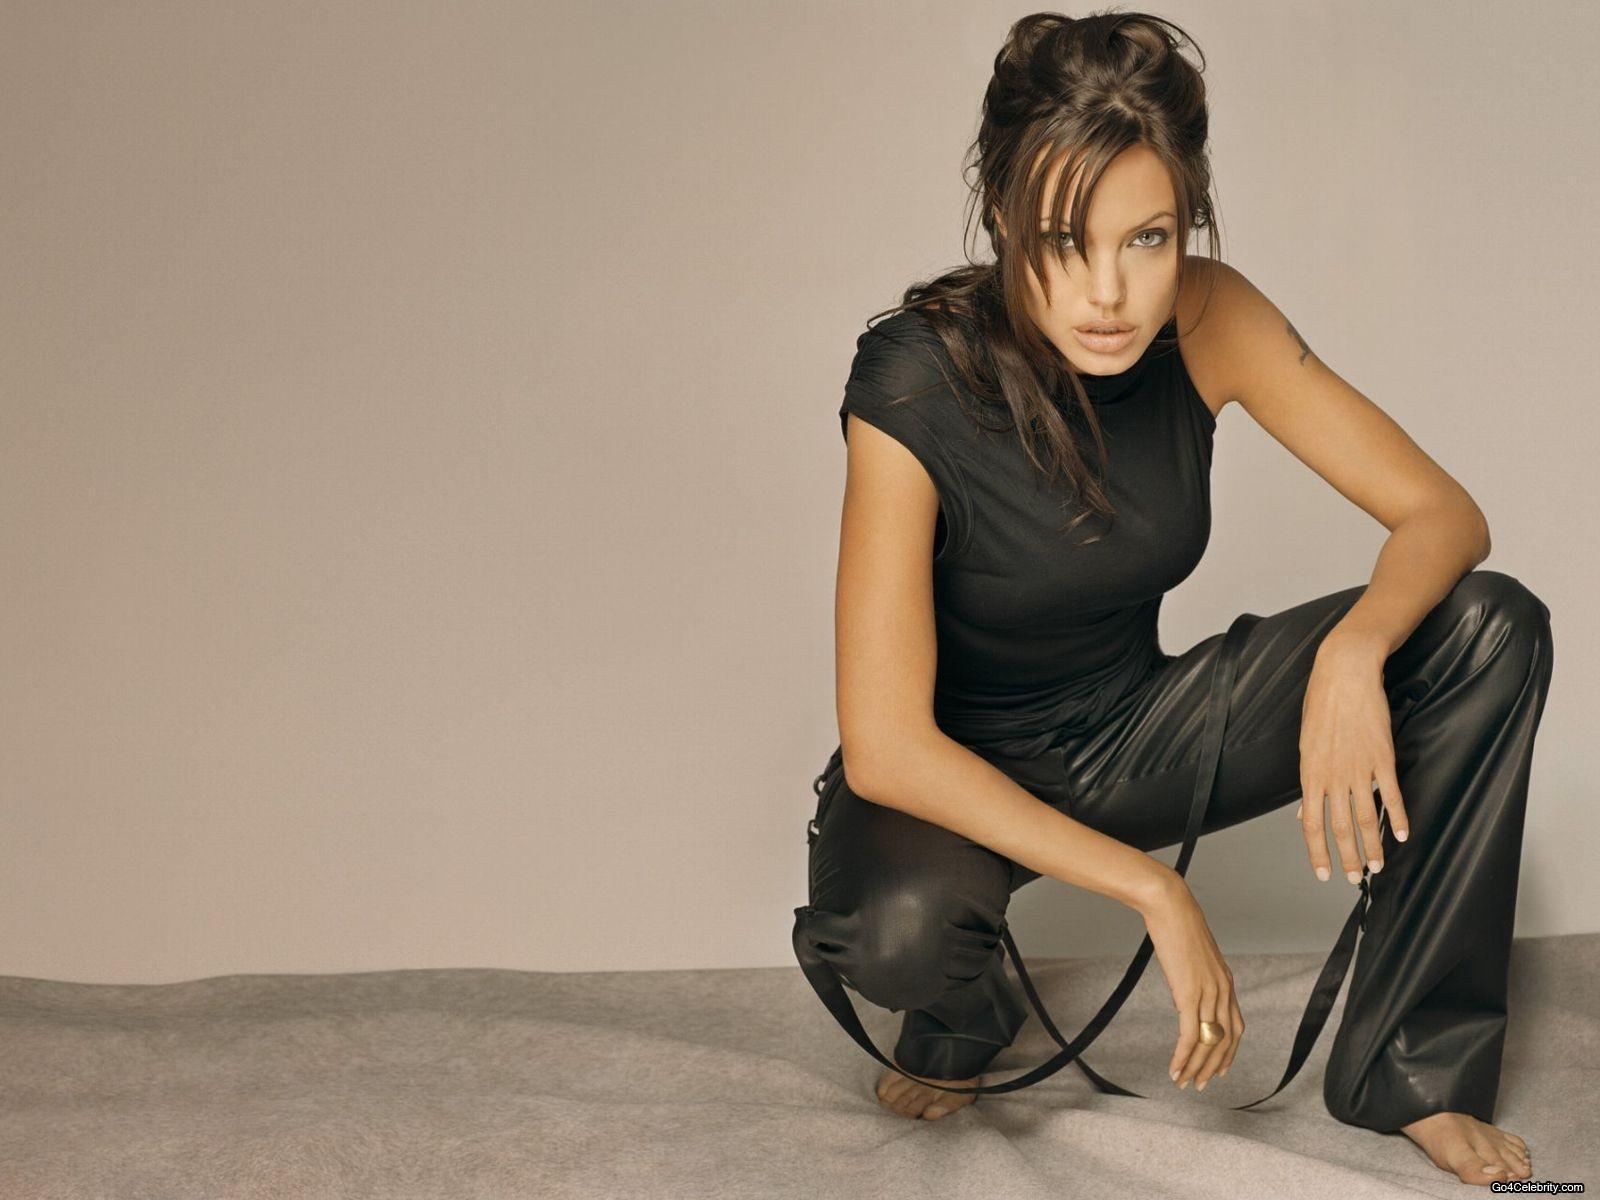 angelina jolie new hot - photo #16